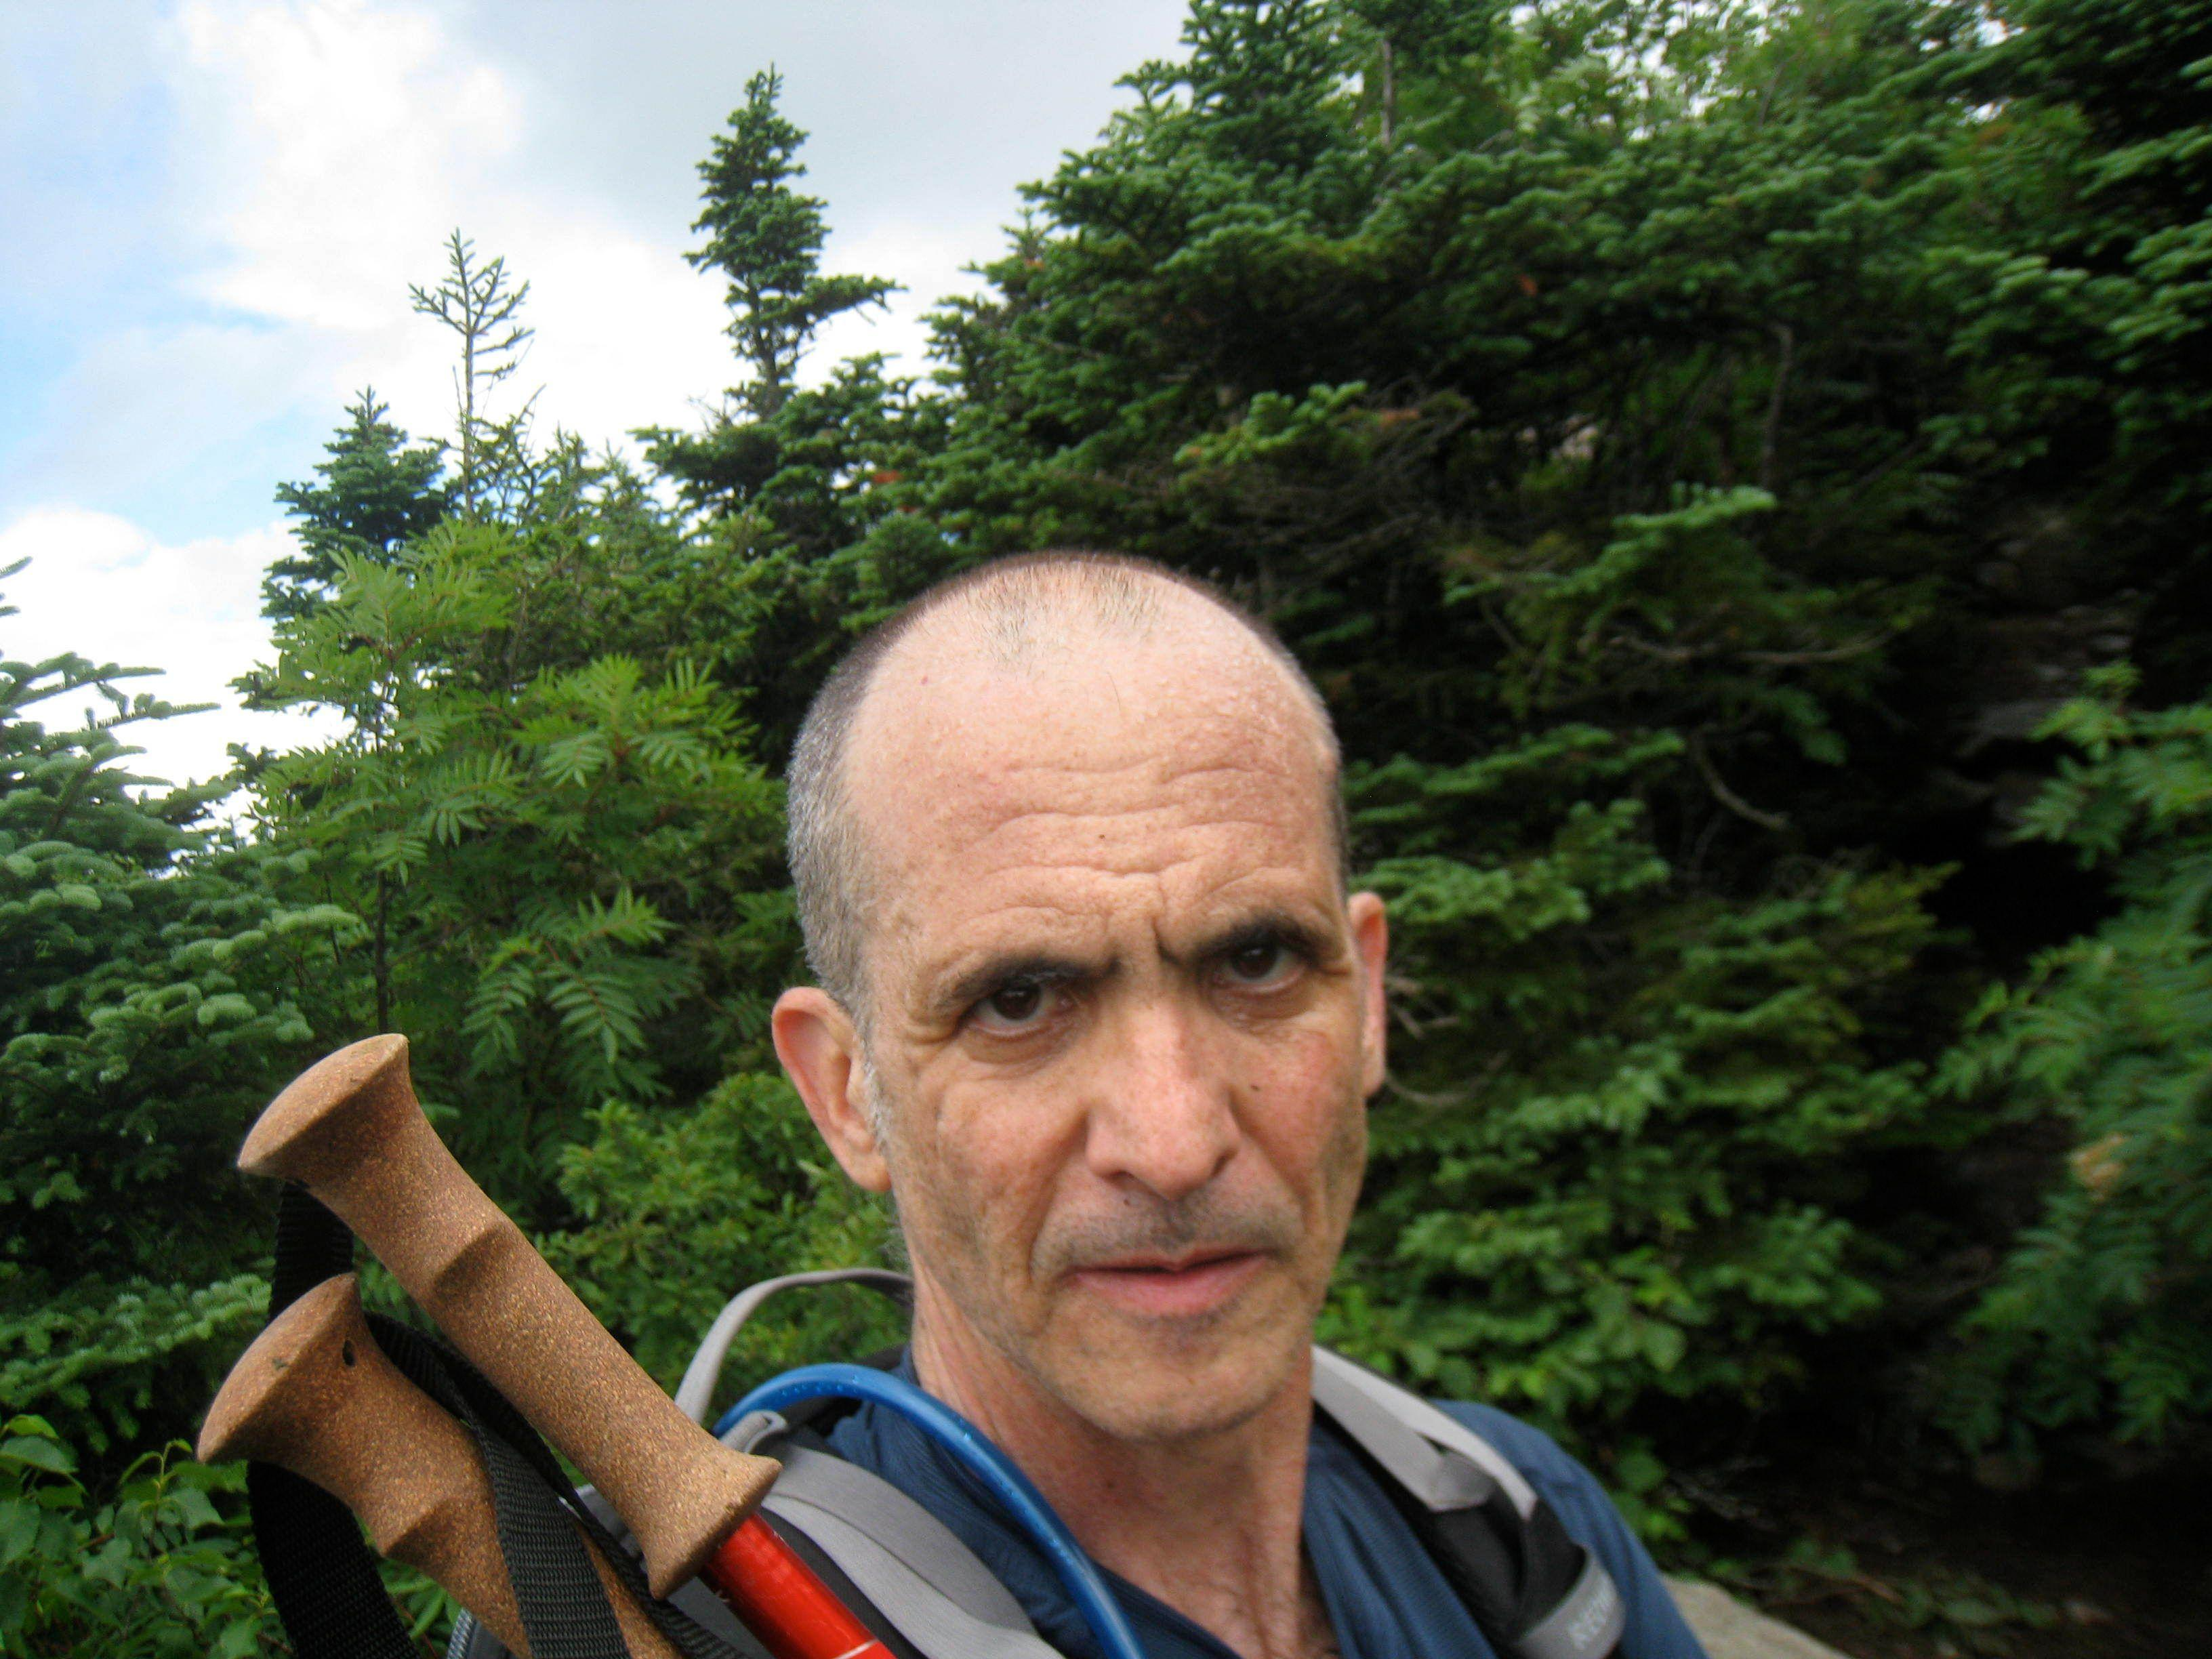 Introduction  sc 1 st  Meetup & Arn - Tent u0026 Trails Outdoor Education Workshops (New York NY ...